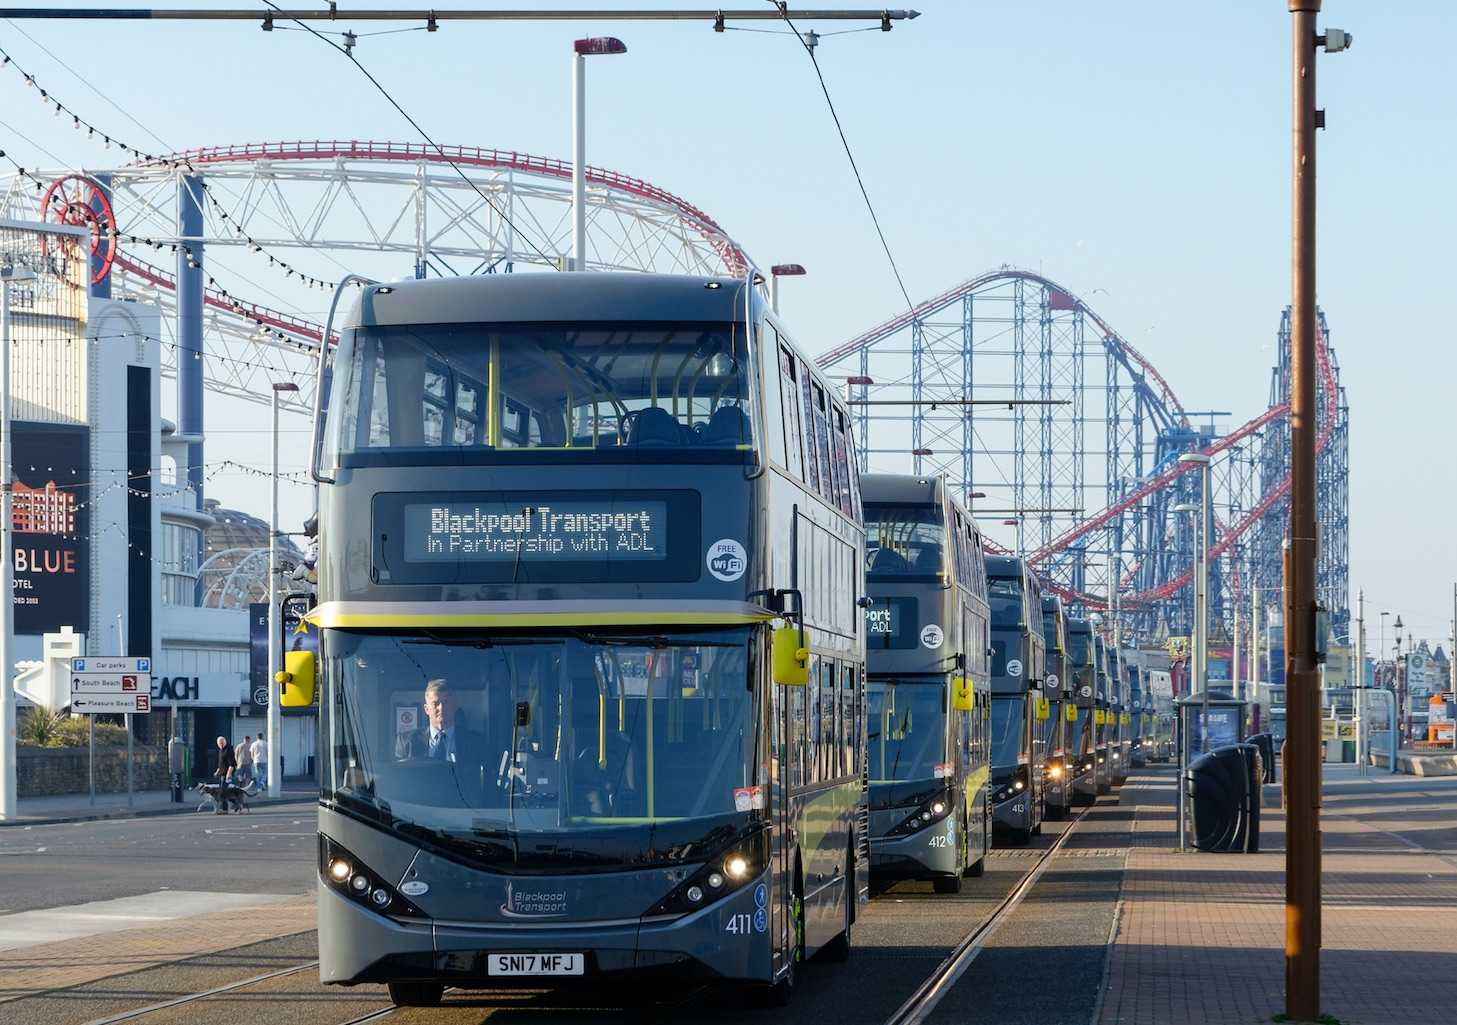 Palladium buses in Blackpool